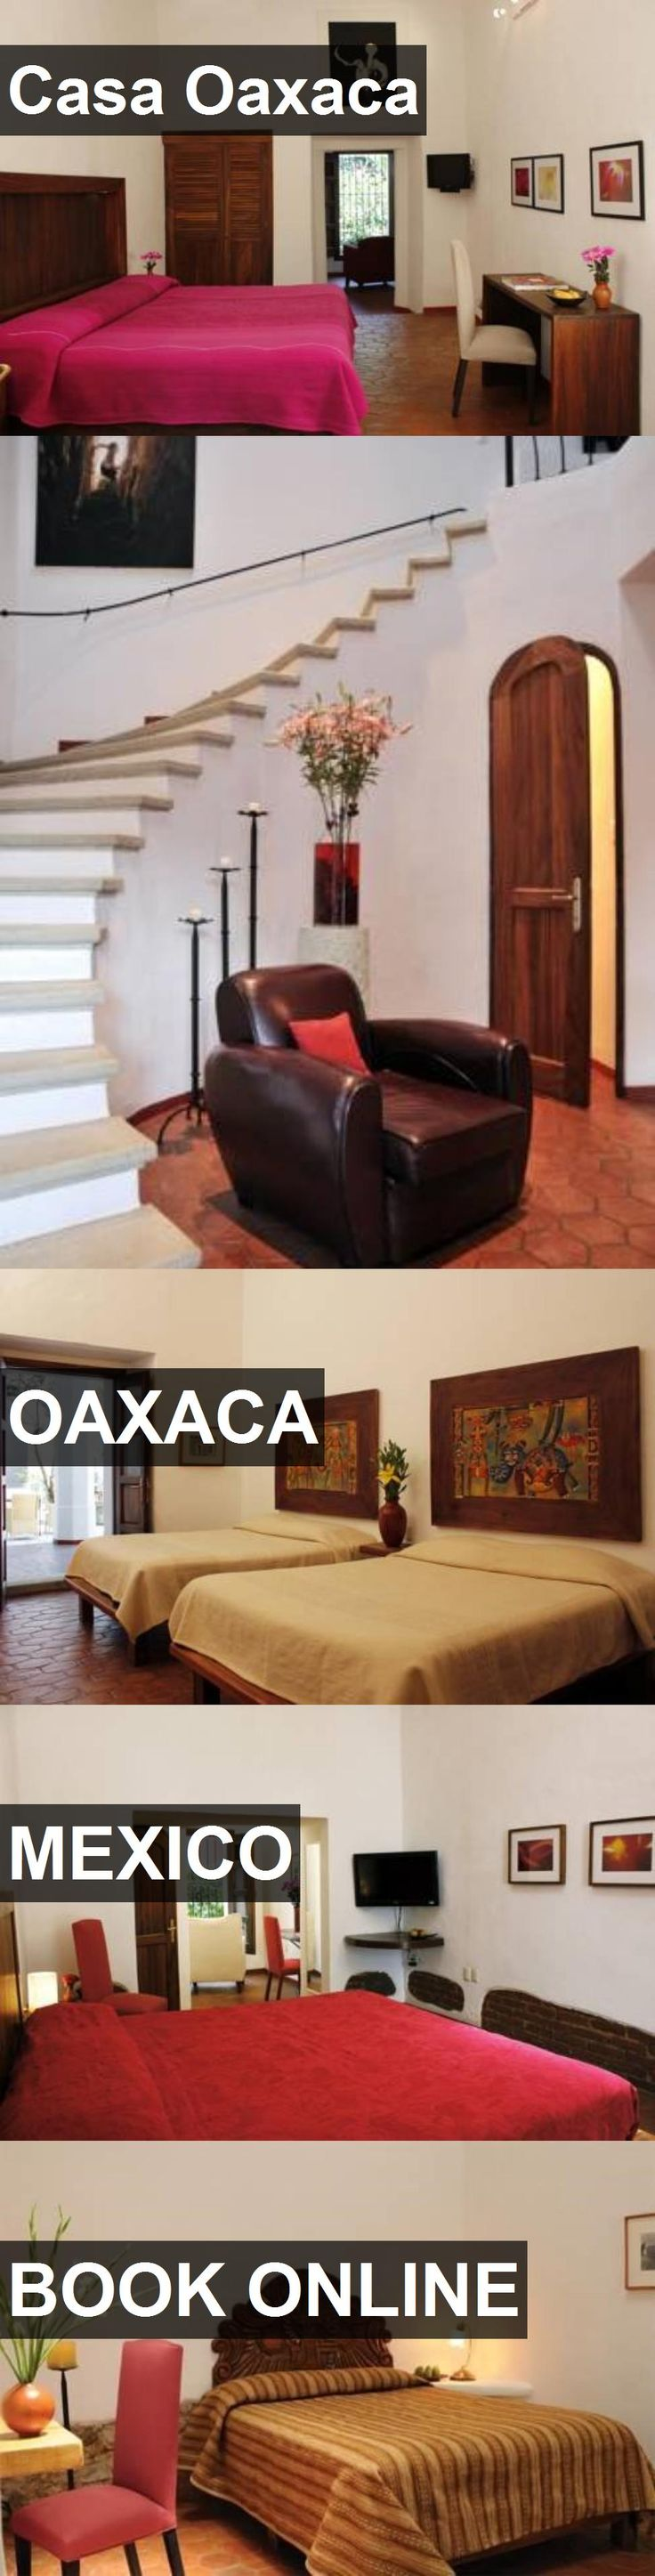 Hotel Casa Oaxaca in Oaxaca, Mexico. For more information, photos, reviews and best prices please follow the link. #Mexico #Oaxaca #travel #vacation #hotel